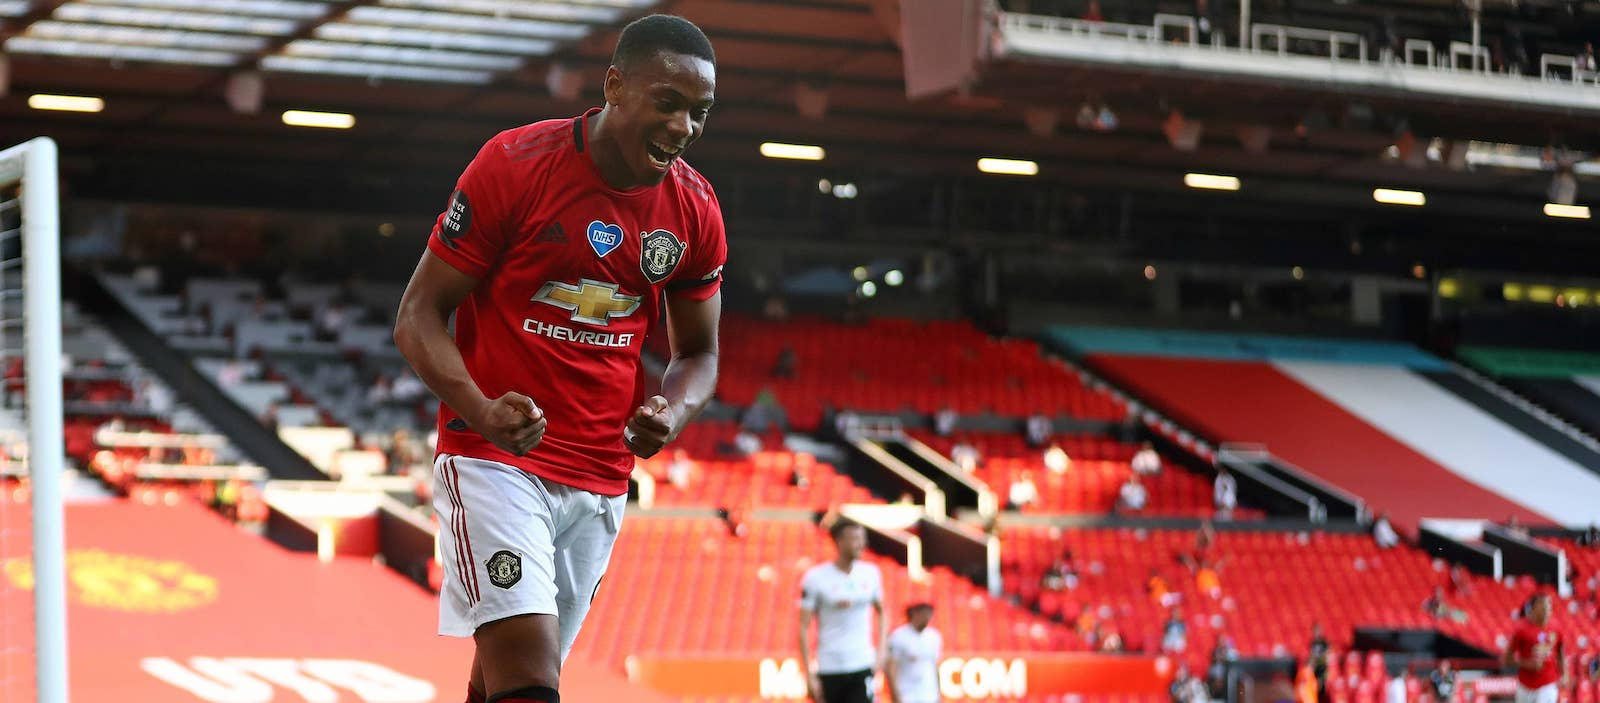 Anthony Martial adds grit to guile to become Manchester United's world class striker